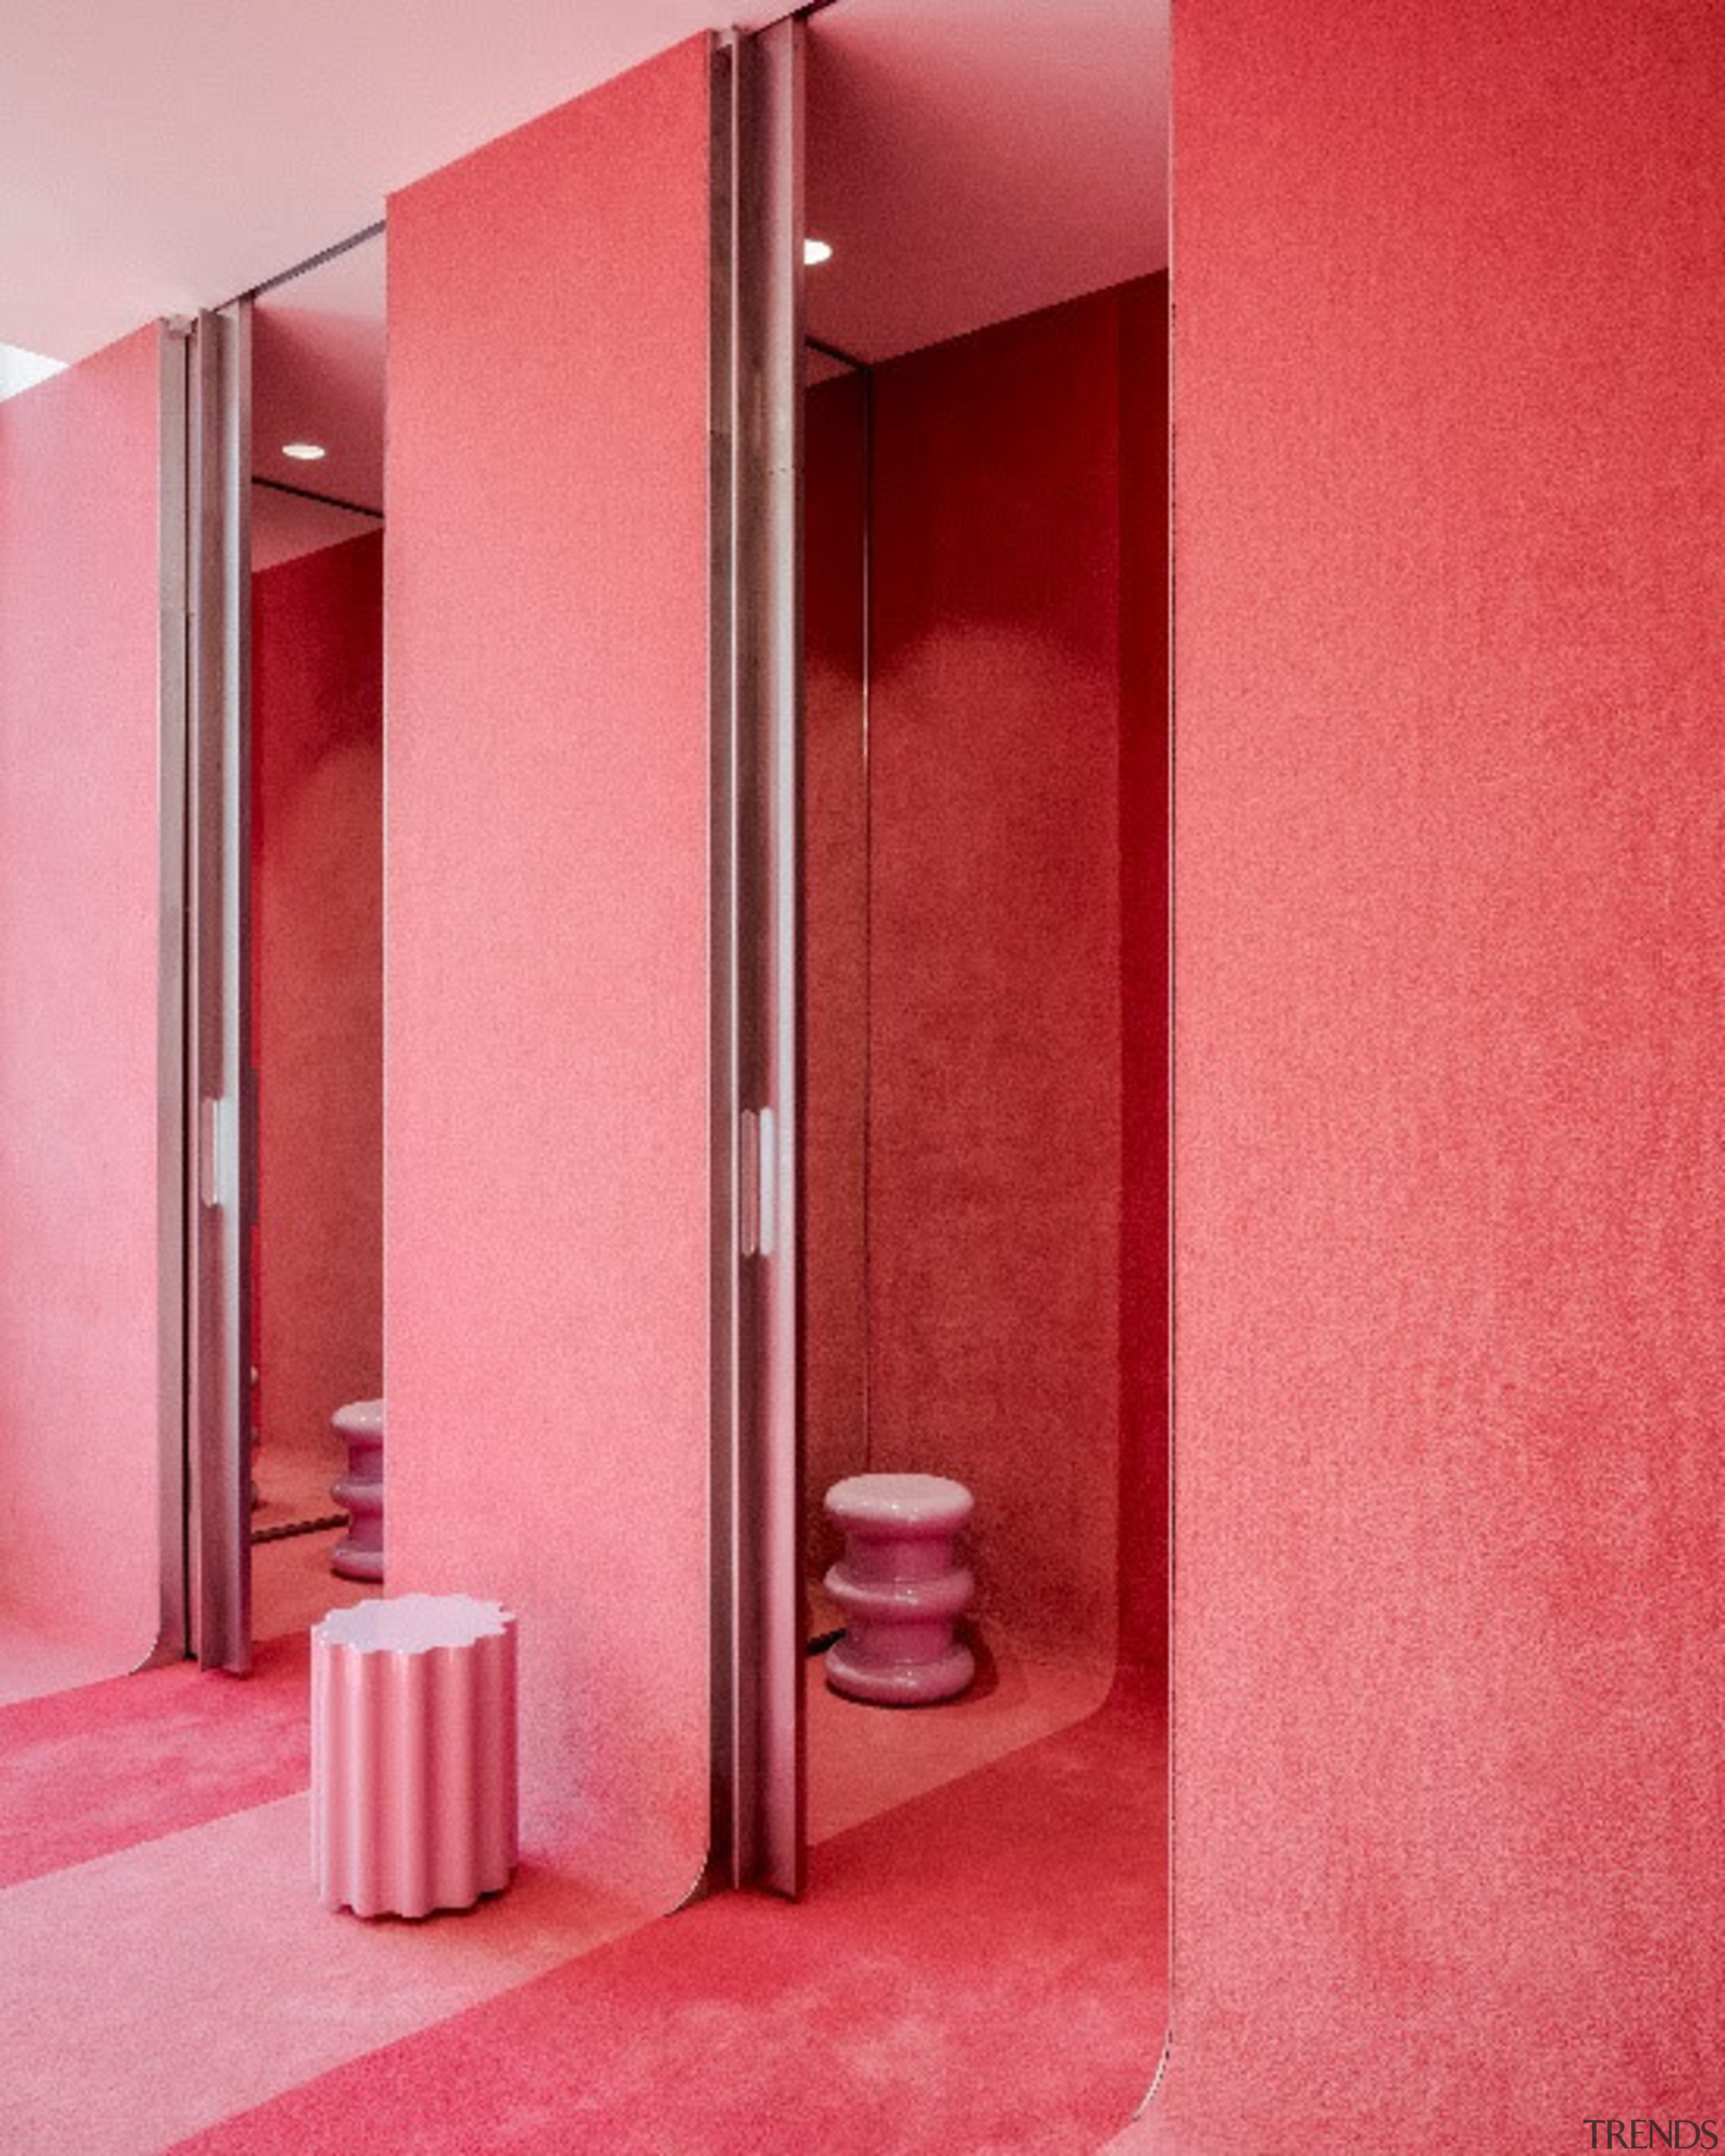 Photo by Michel Florent - Discover BIG's retail architecture, door, interior design, material property, pink, red, room, wall, red